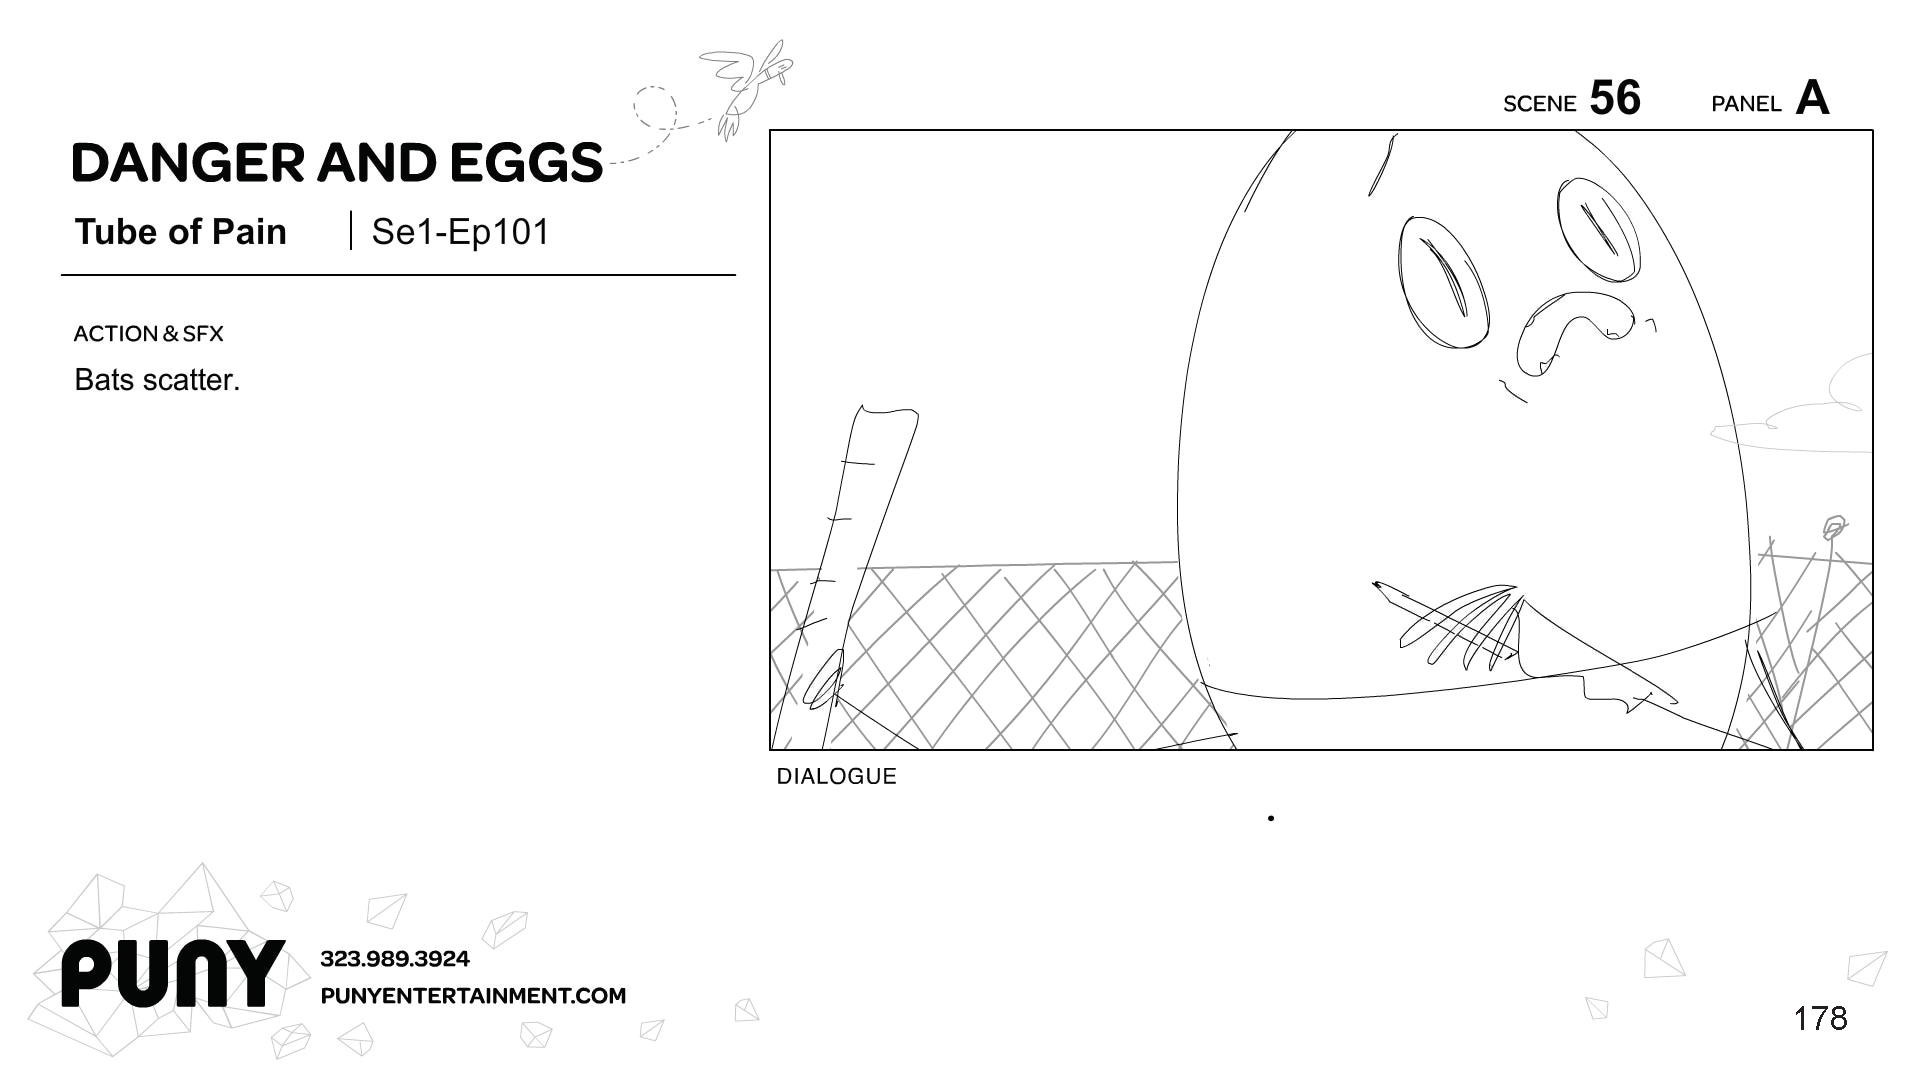 MikeOwens_STORYBOARDS_DangerAndEggs_Page_178.png